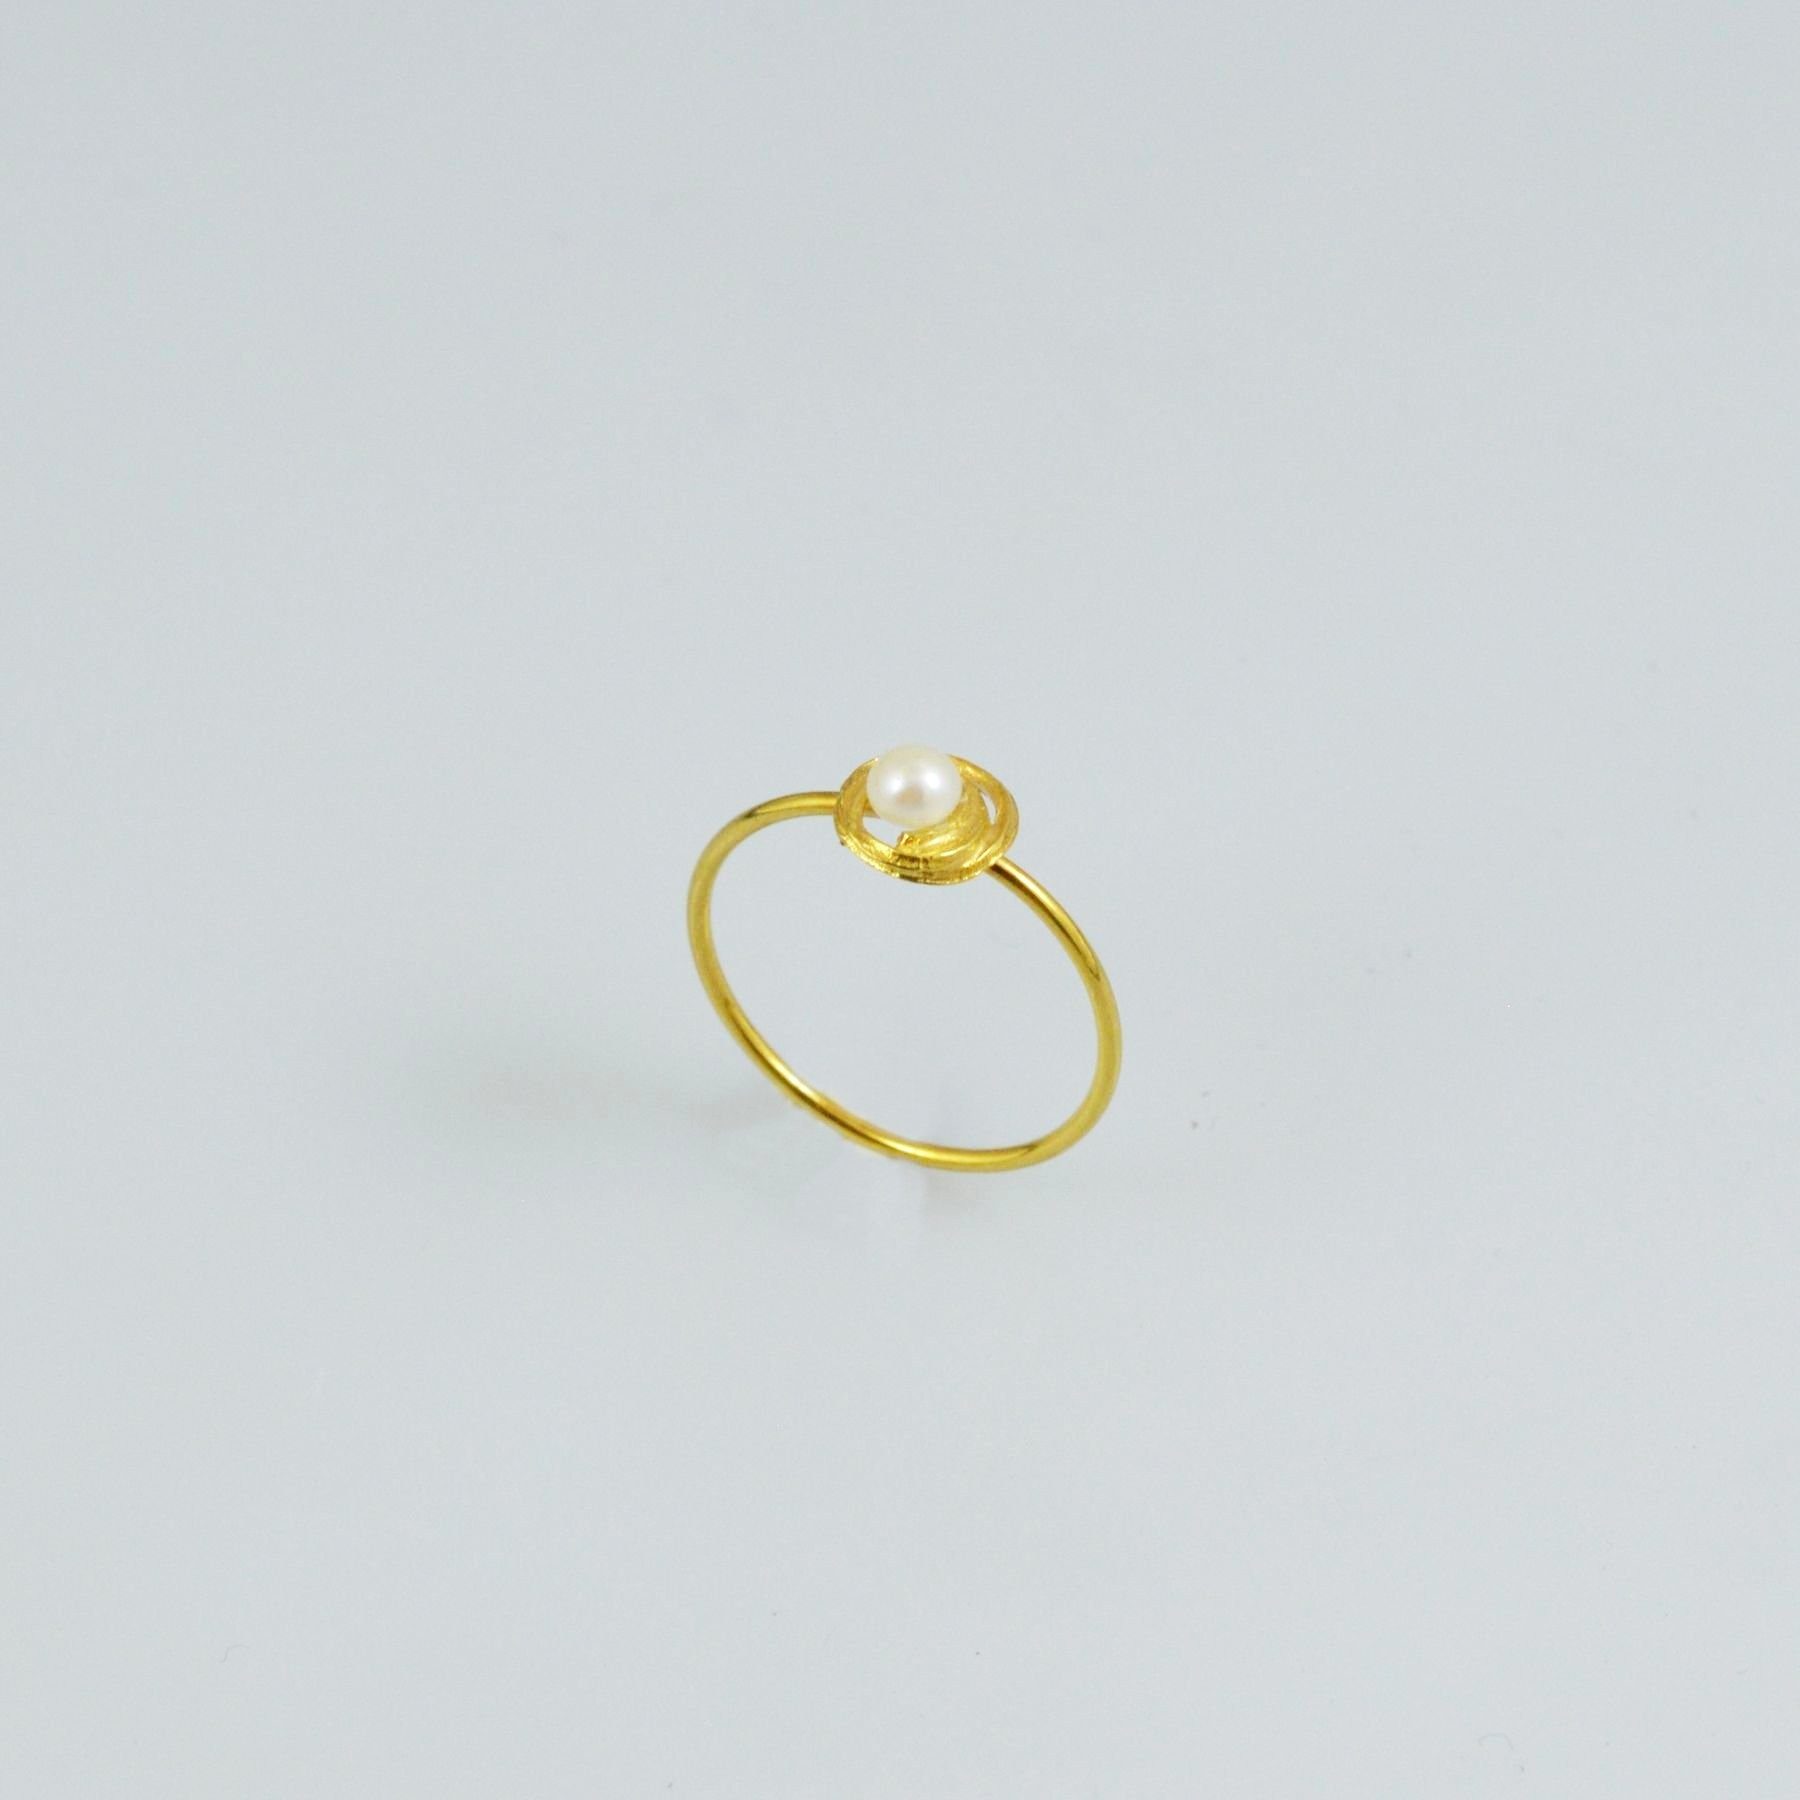 Handmade gold ring 14K with pearl